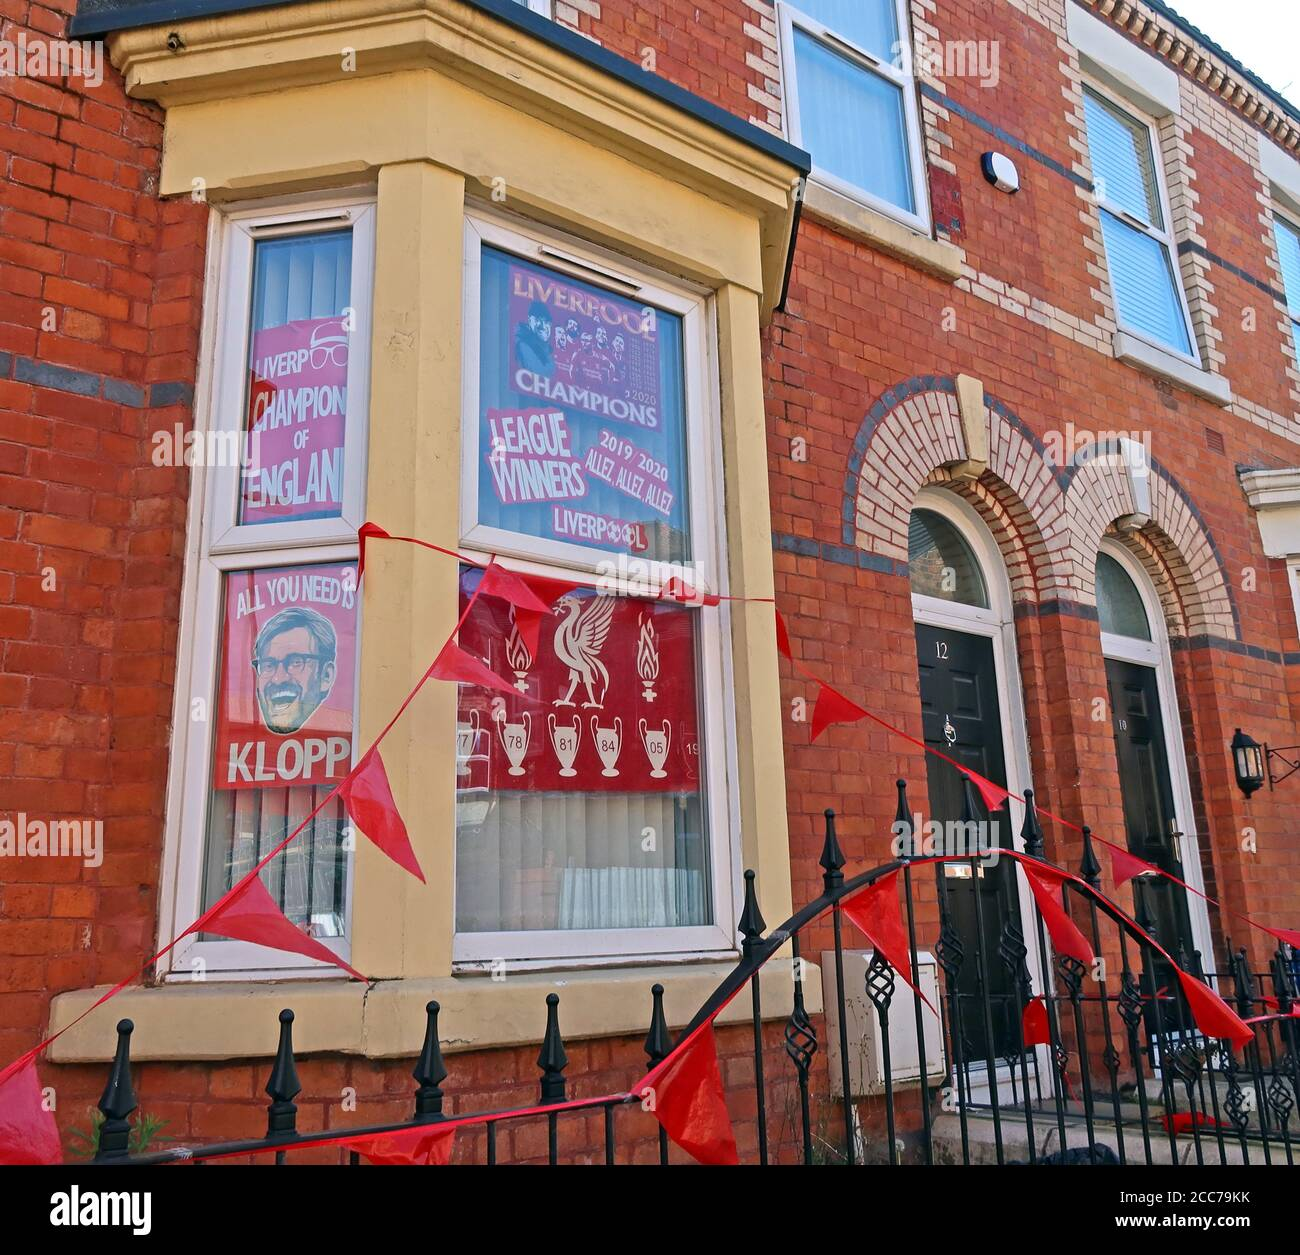 GoTonySmith,@HotpixUK,HotpixUK,North West England,England,UK,All You Need is Klopp,League Winners,Liverpool Fans,L4,red,flag,flags